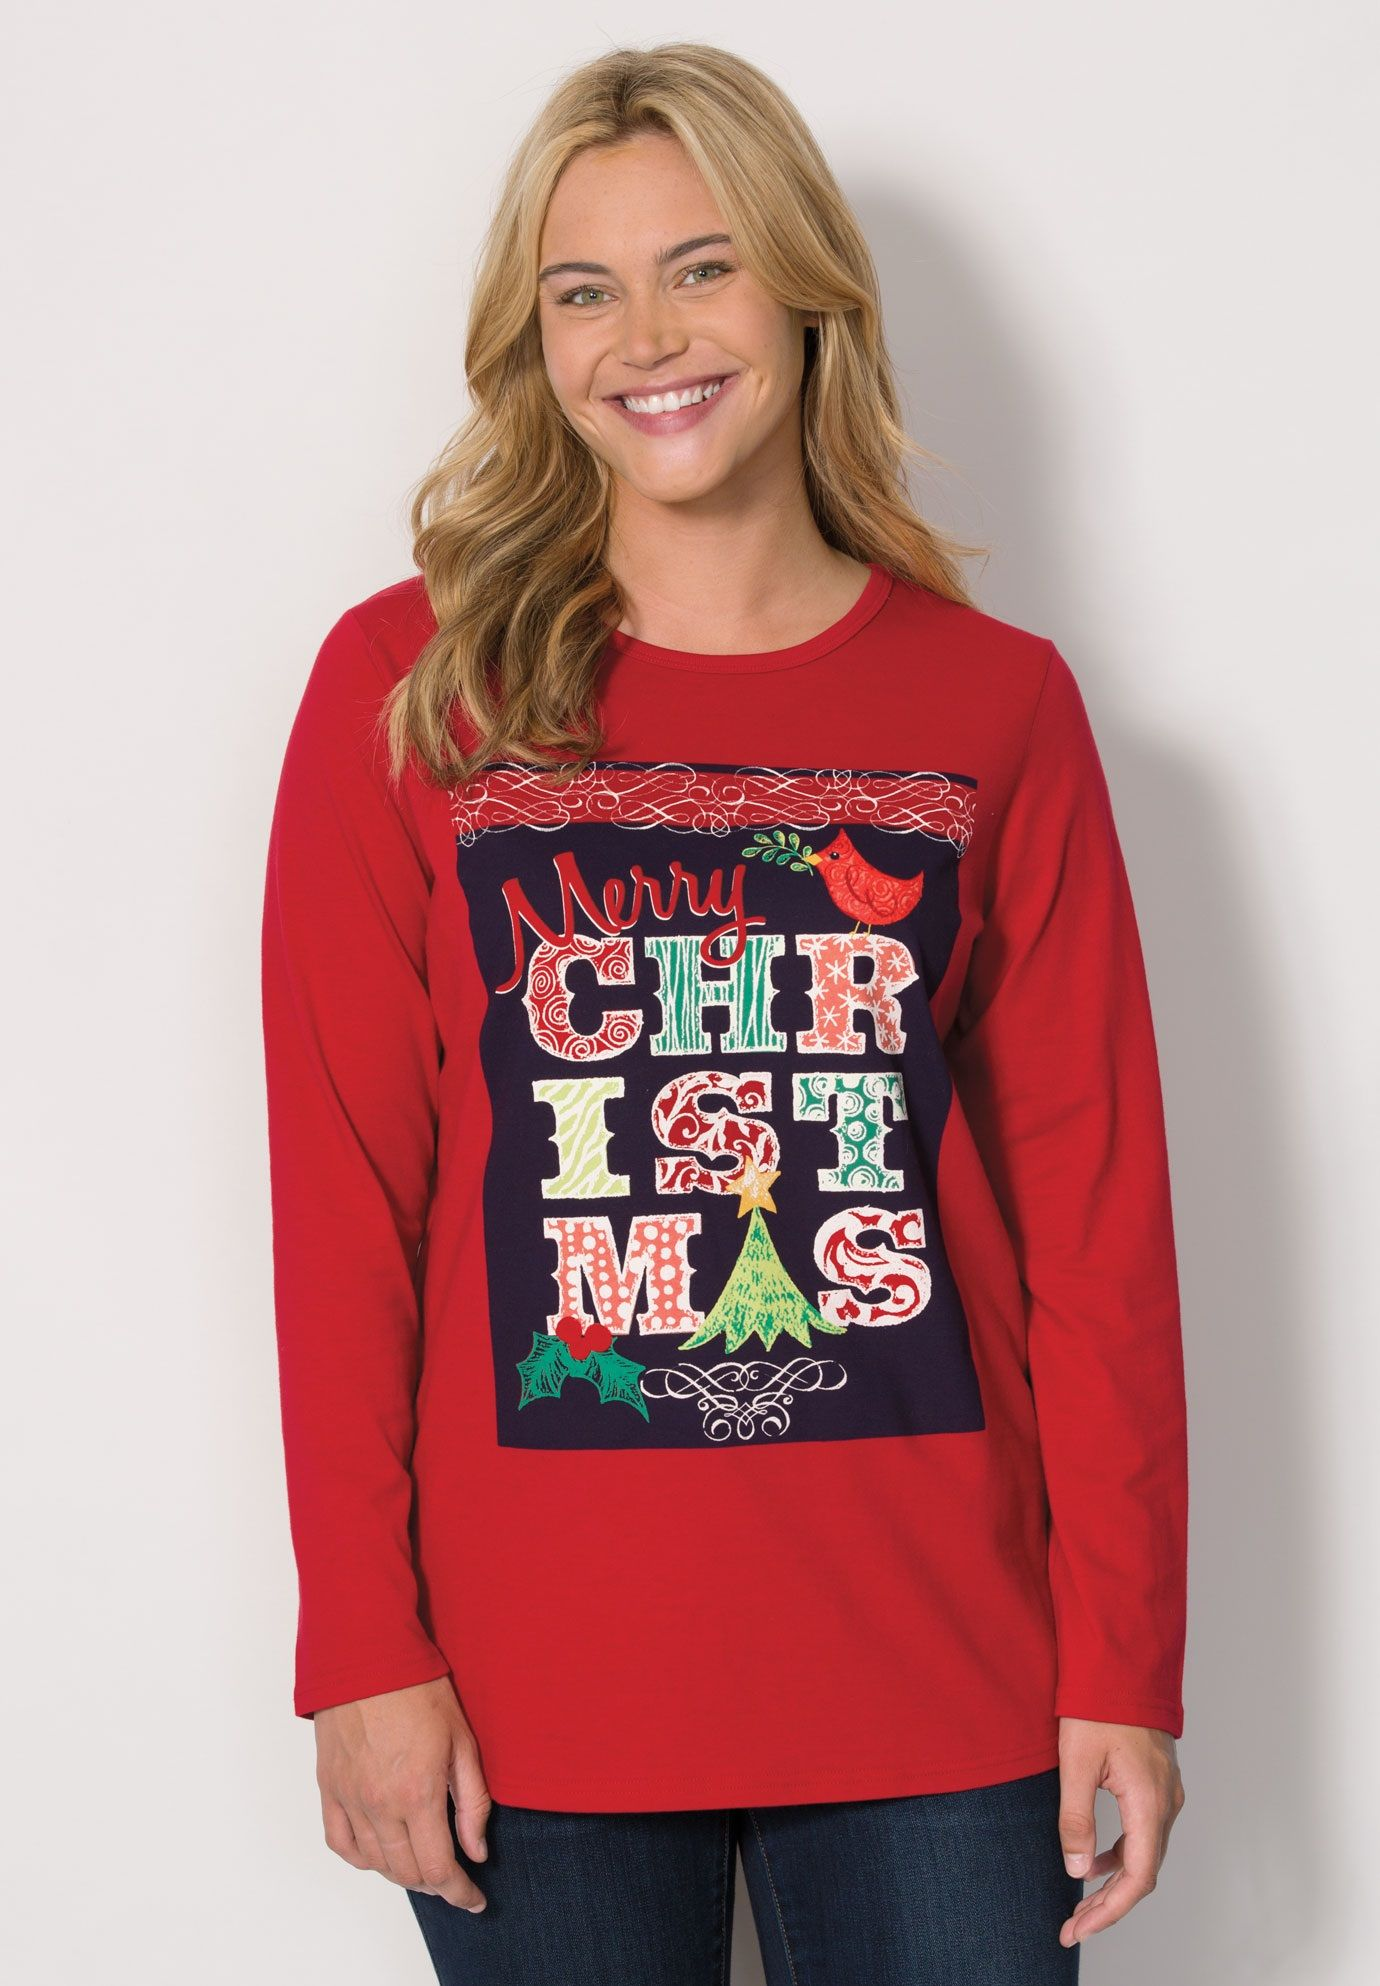 0499eb74a9d Festive knit holiday T-shirts - Women s Plus Size Clothing ...